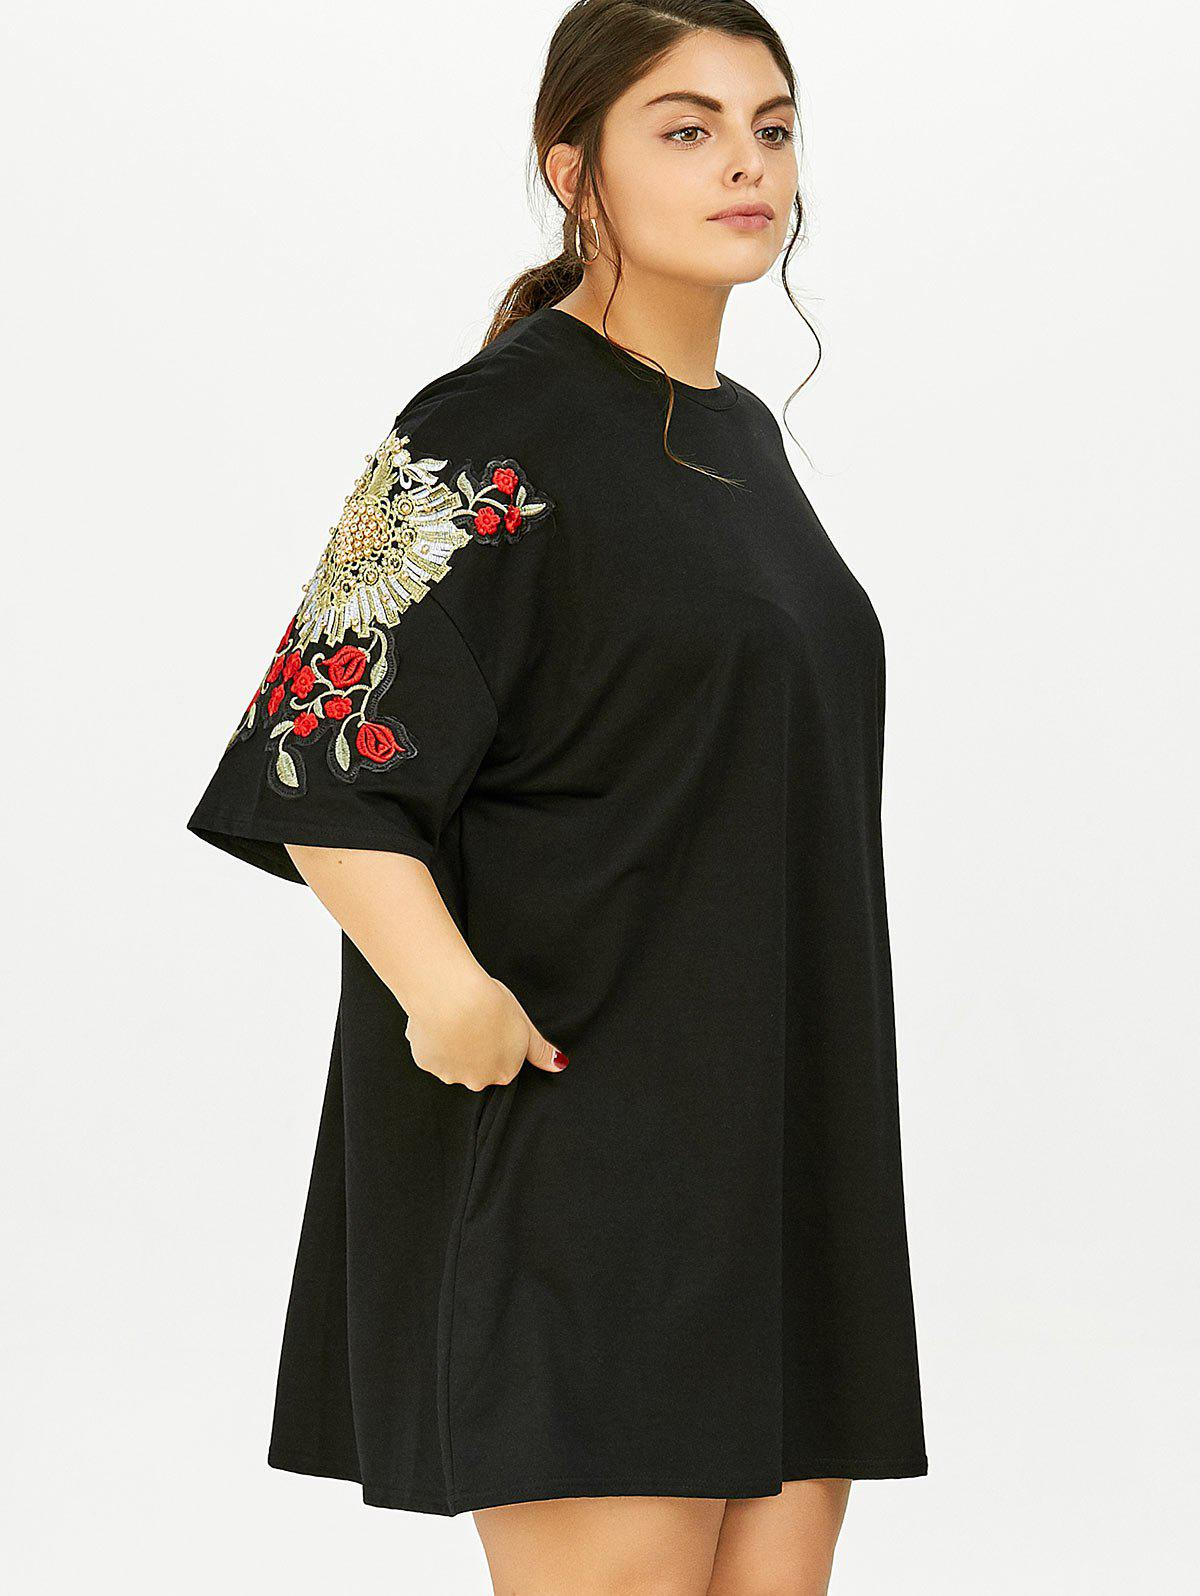 2018 plus size floral embroidered tunic t shirt dress with